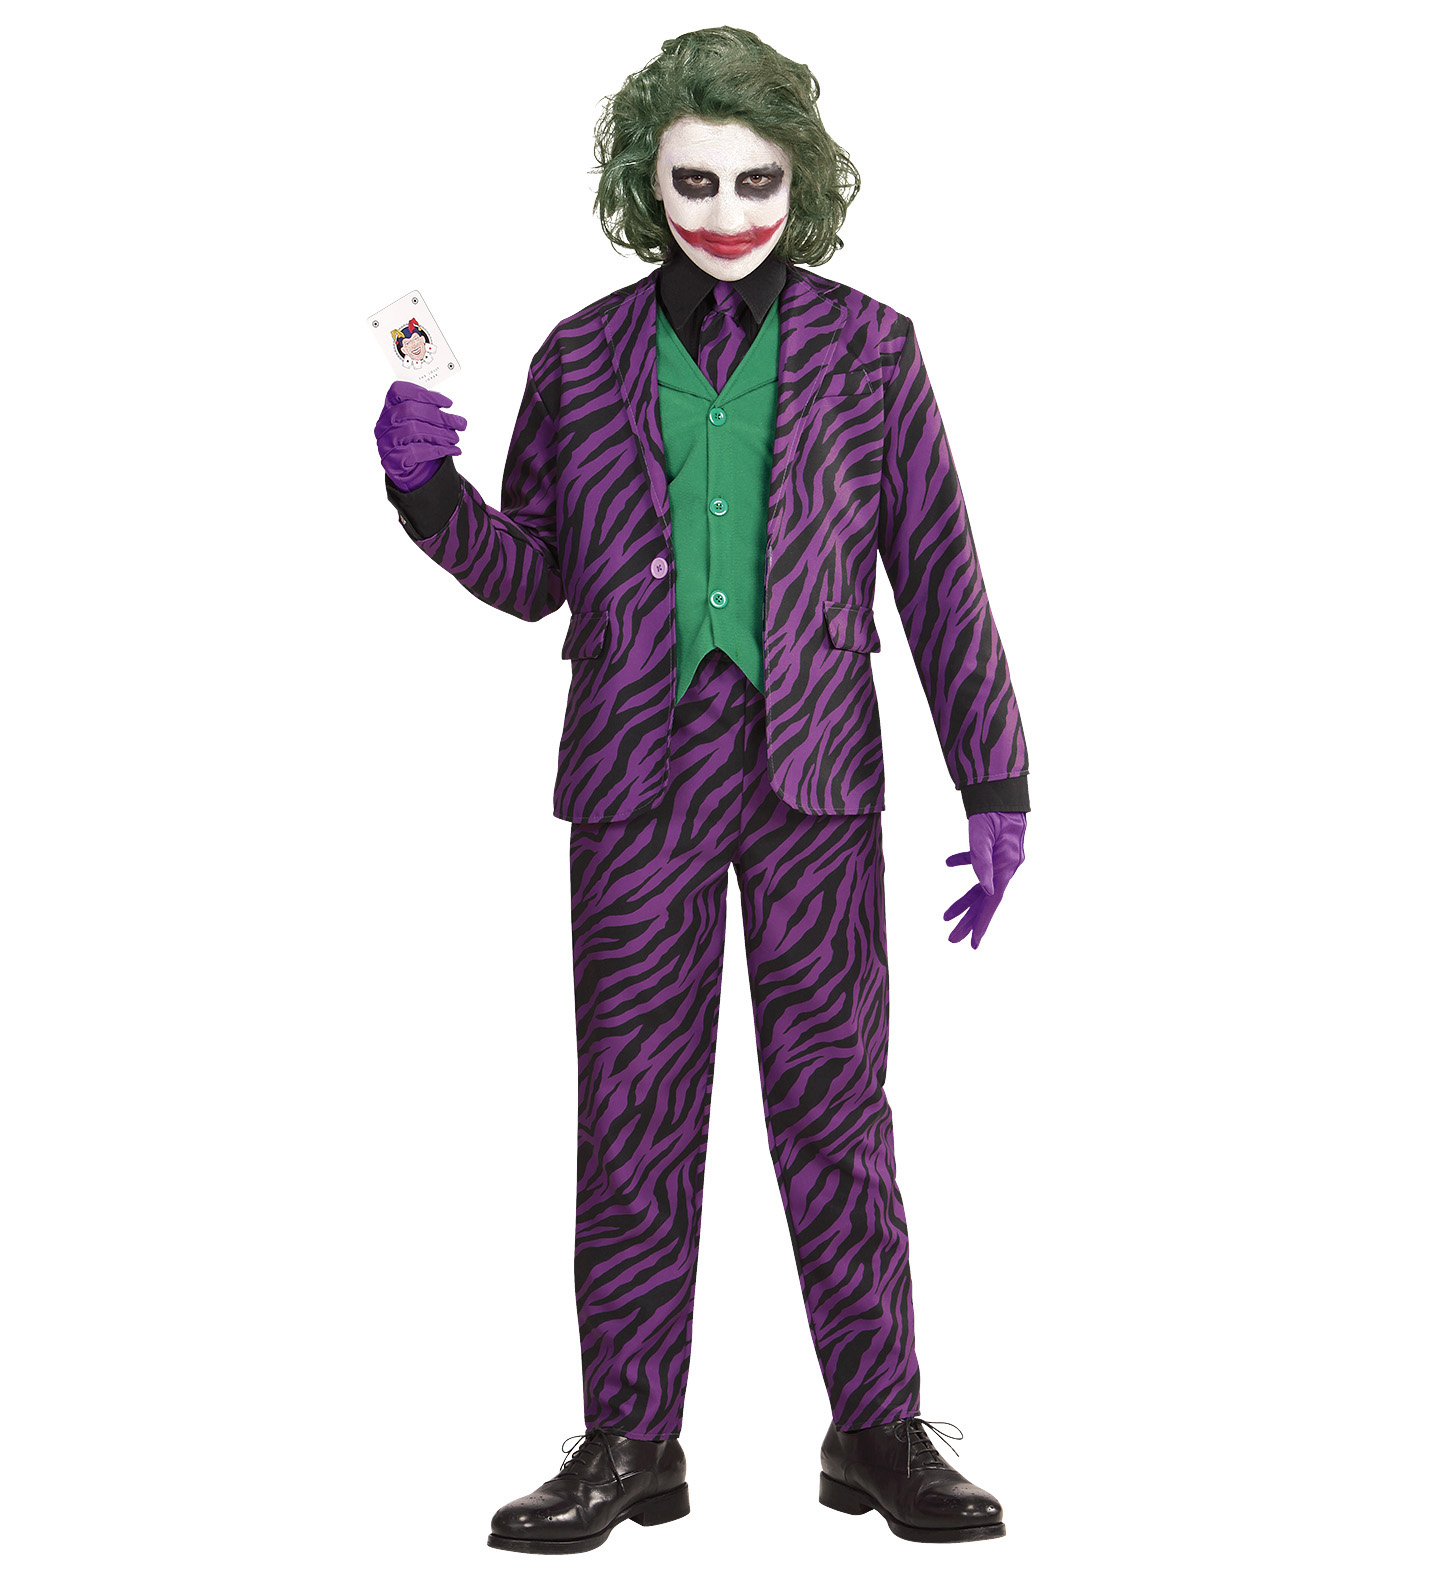 Halloween Kostüme Kinder Toys R Us Details About Boys Kids Childs Evil Joker Halloween Fancy Dress Costume Outfit 4 5 Yrs